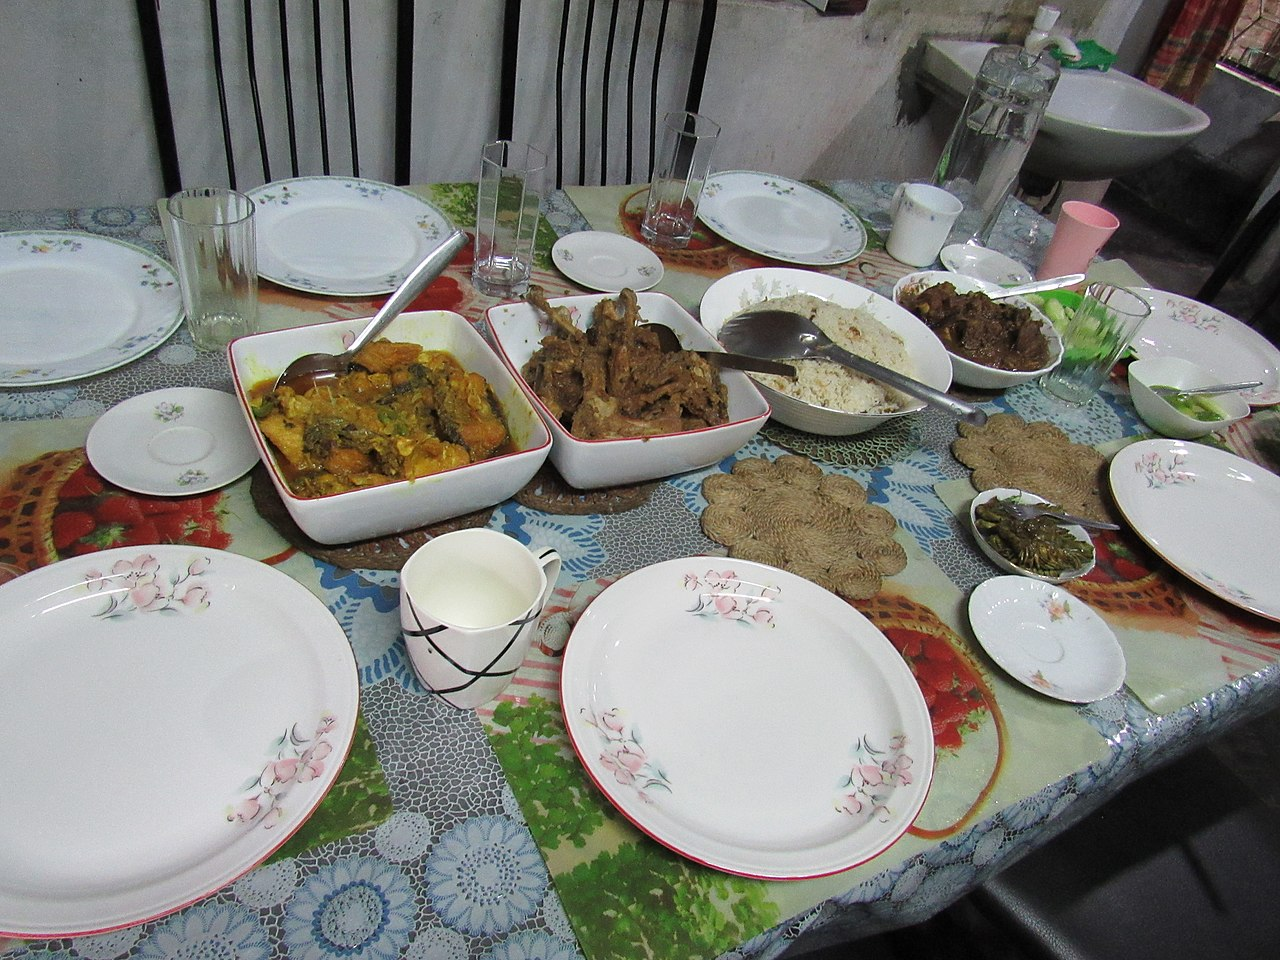 File:Dinner Table Arrangement With Food Of A Middle Class Bangladeshi  Family 01